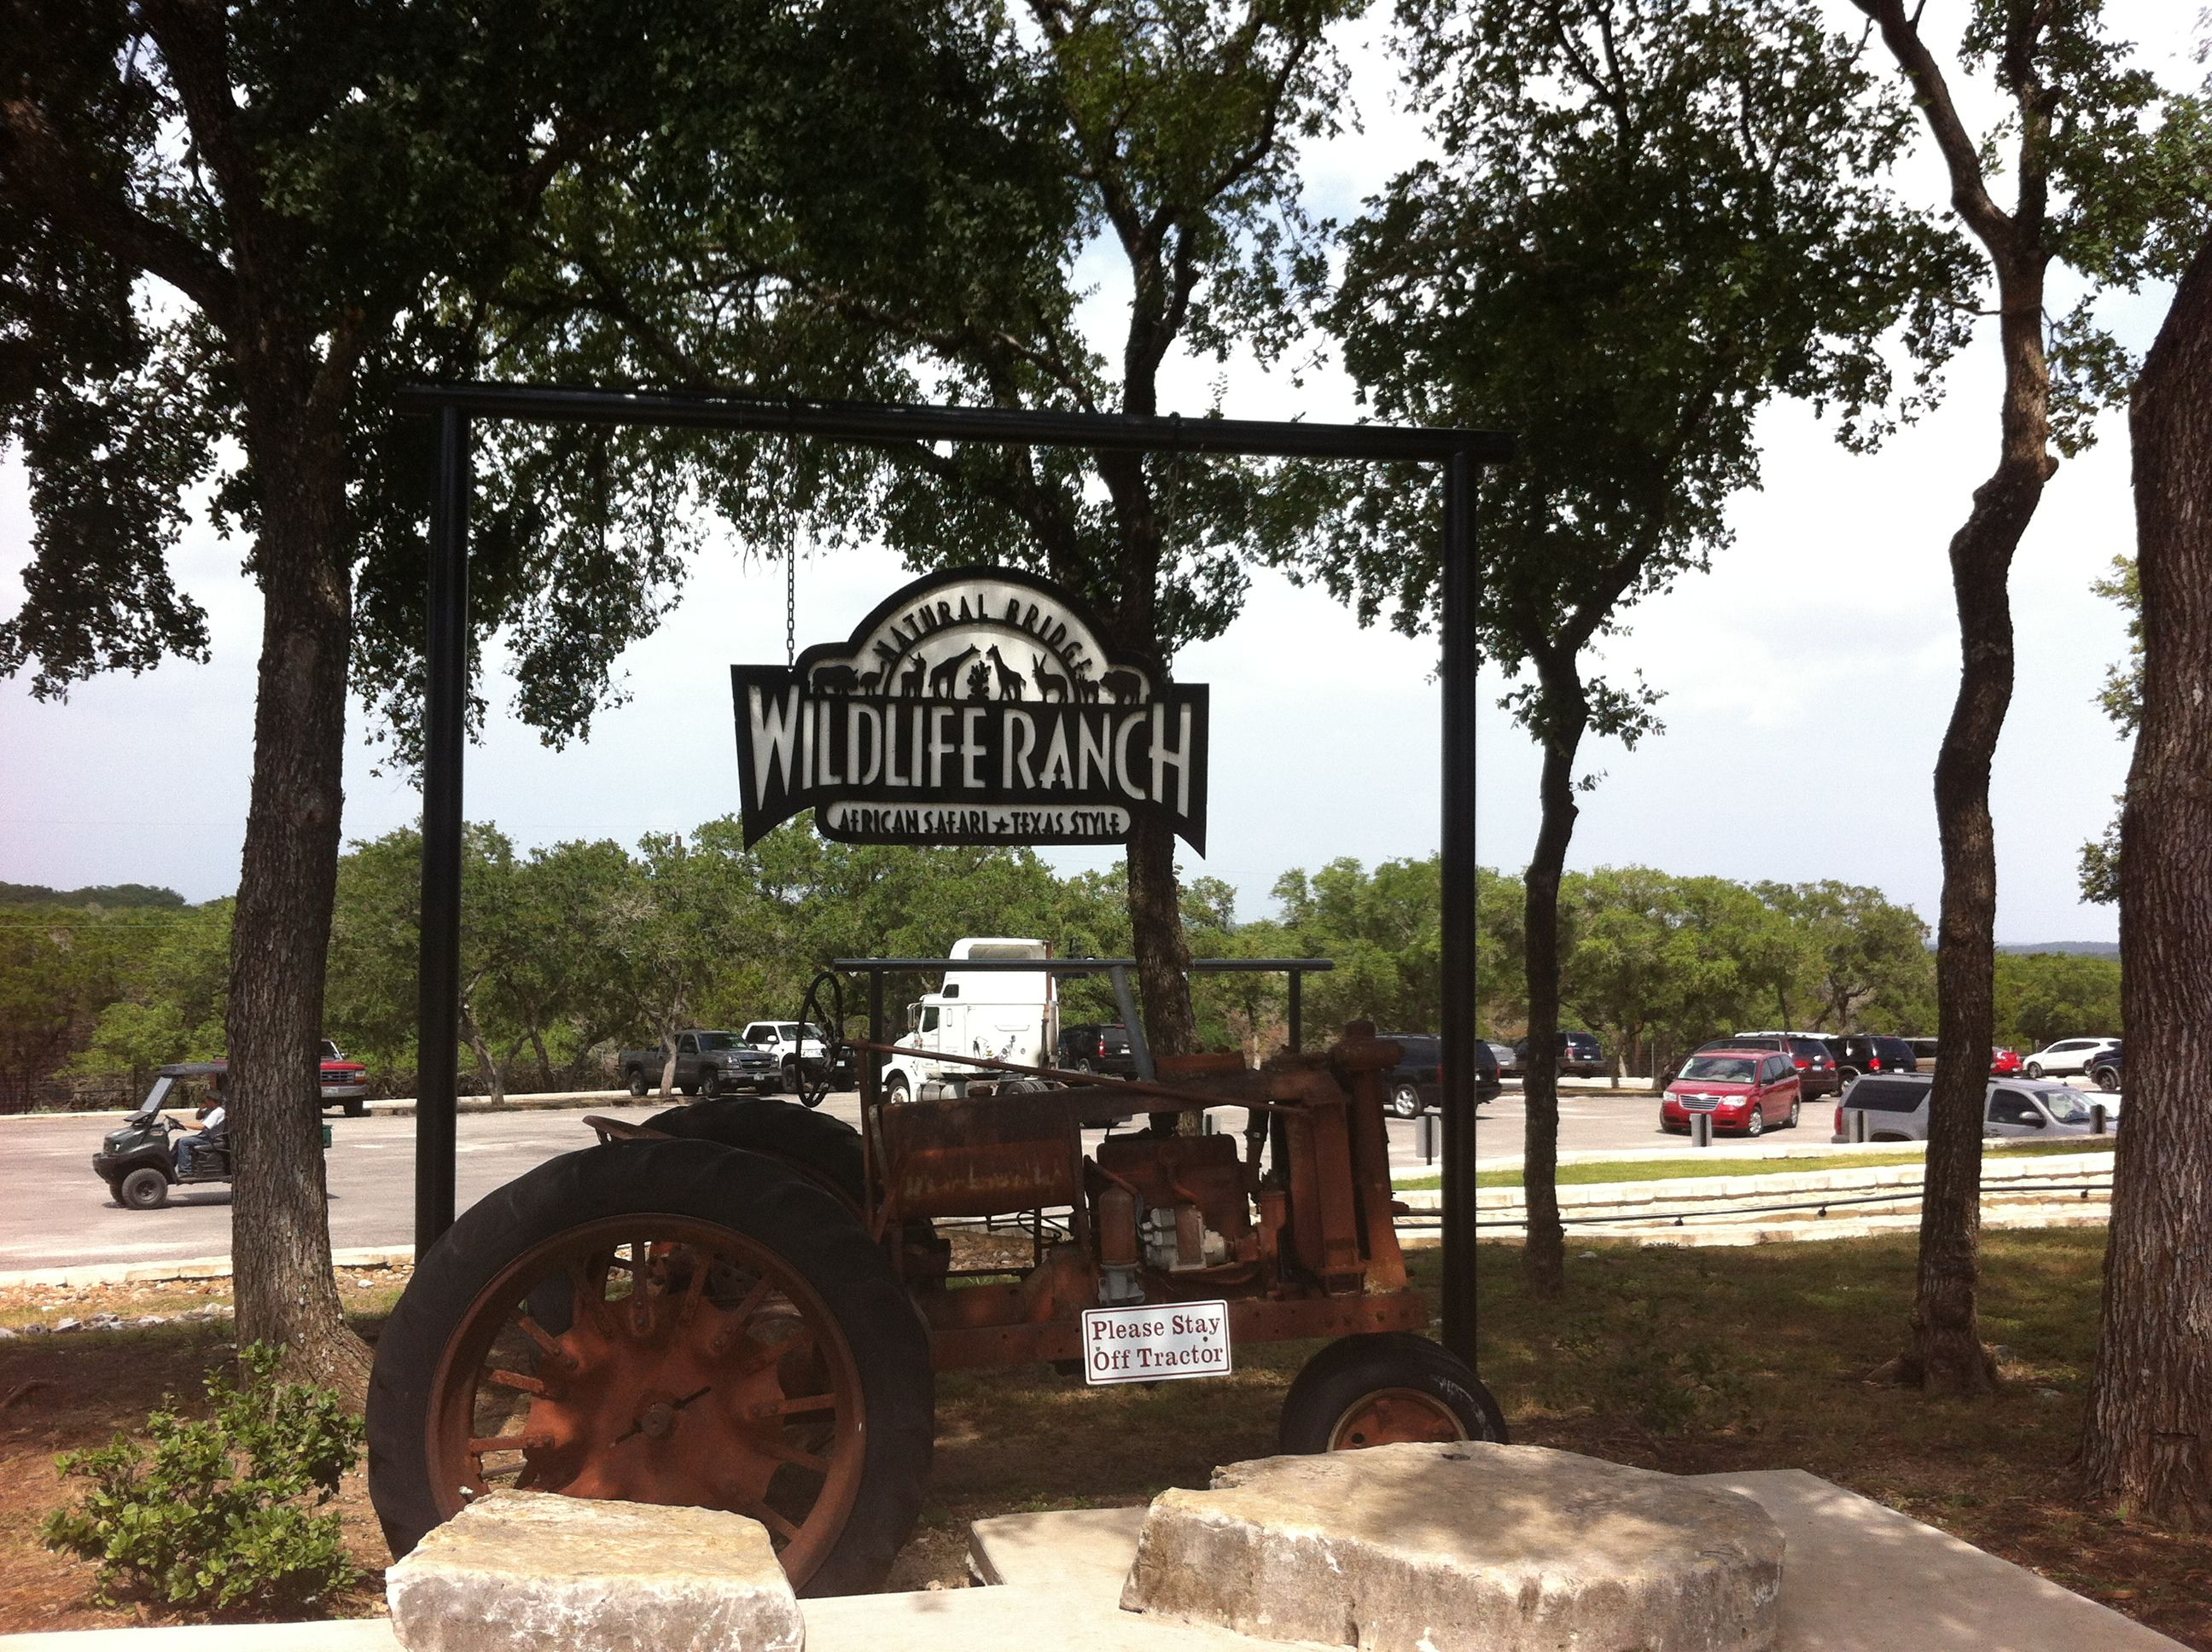 Jul 09, · Owner description: Natural Bridge Wildlife Ranch is an African Safari, Texas-Style. View and feed more than animals representing over 40 species from all K TripAdvisor reviews.